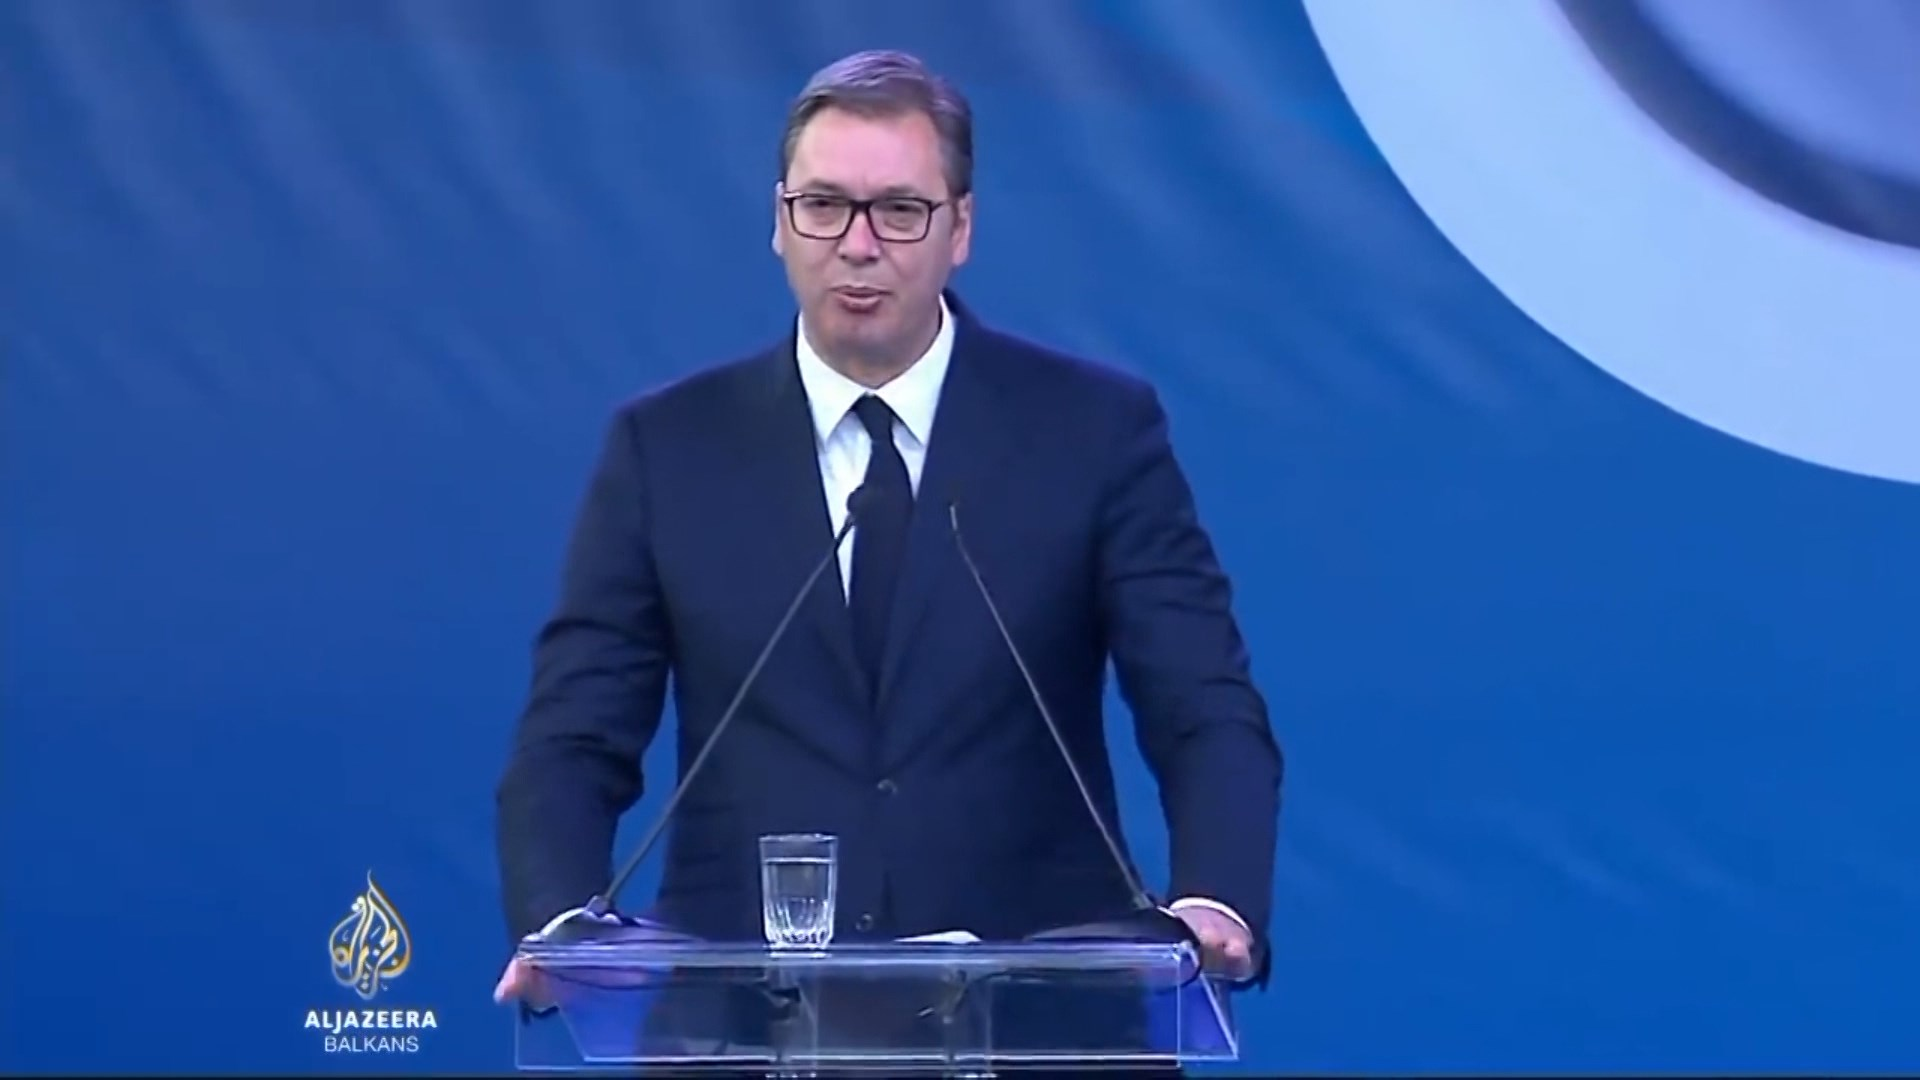 Vucic: For me, the most important thing is the free circulation of wares rather than recognitions of Kosovo